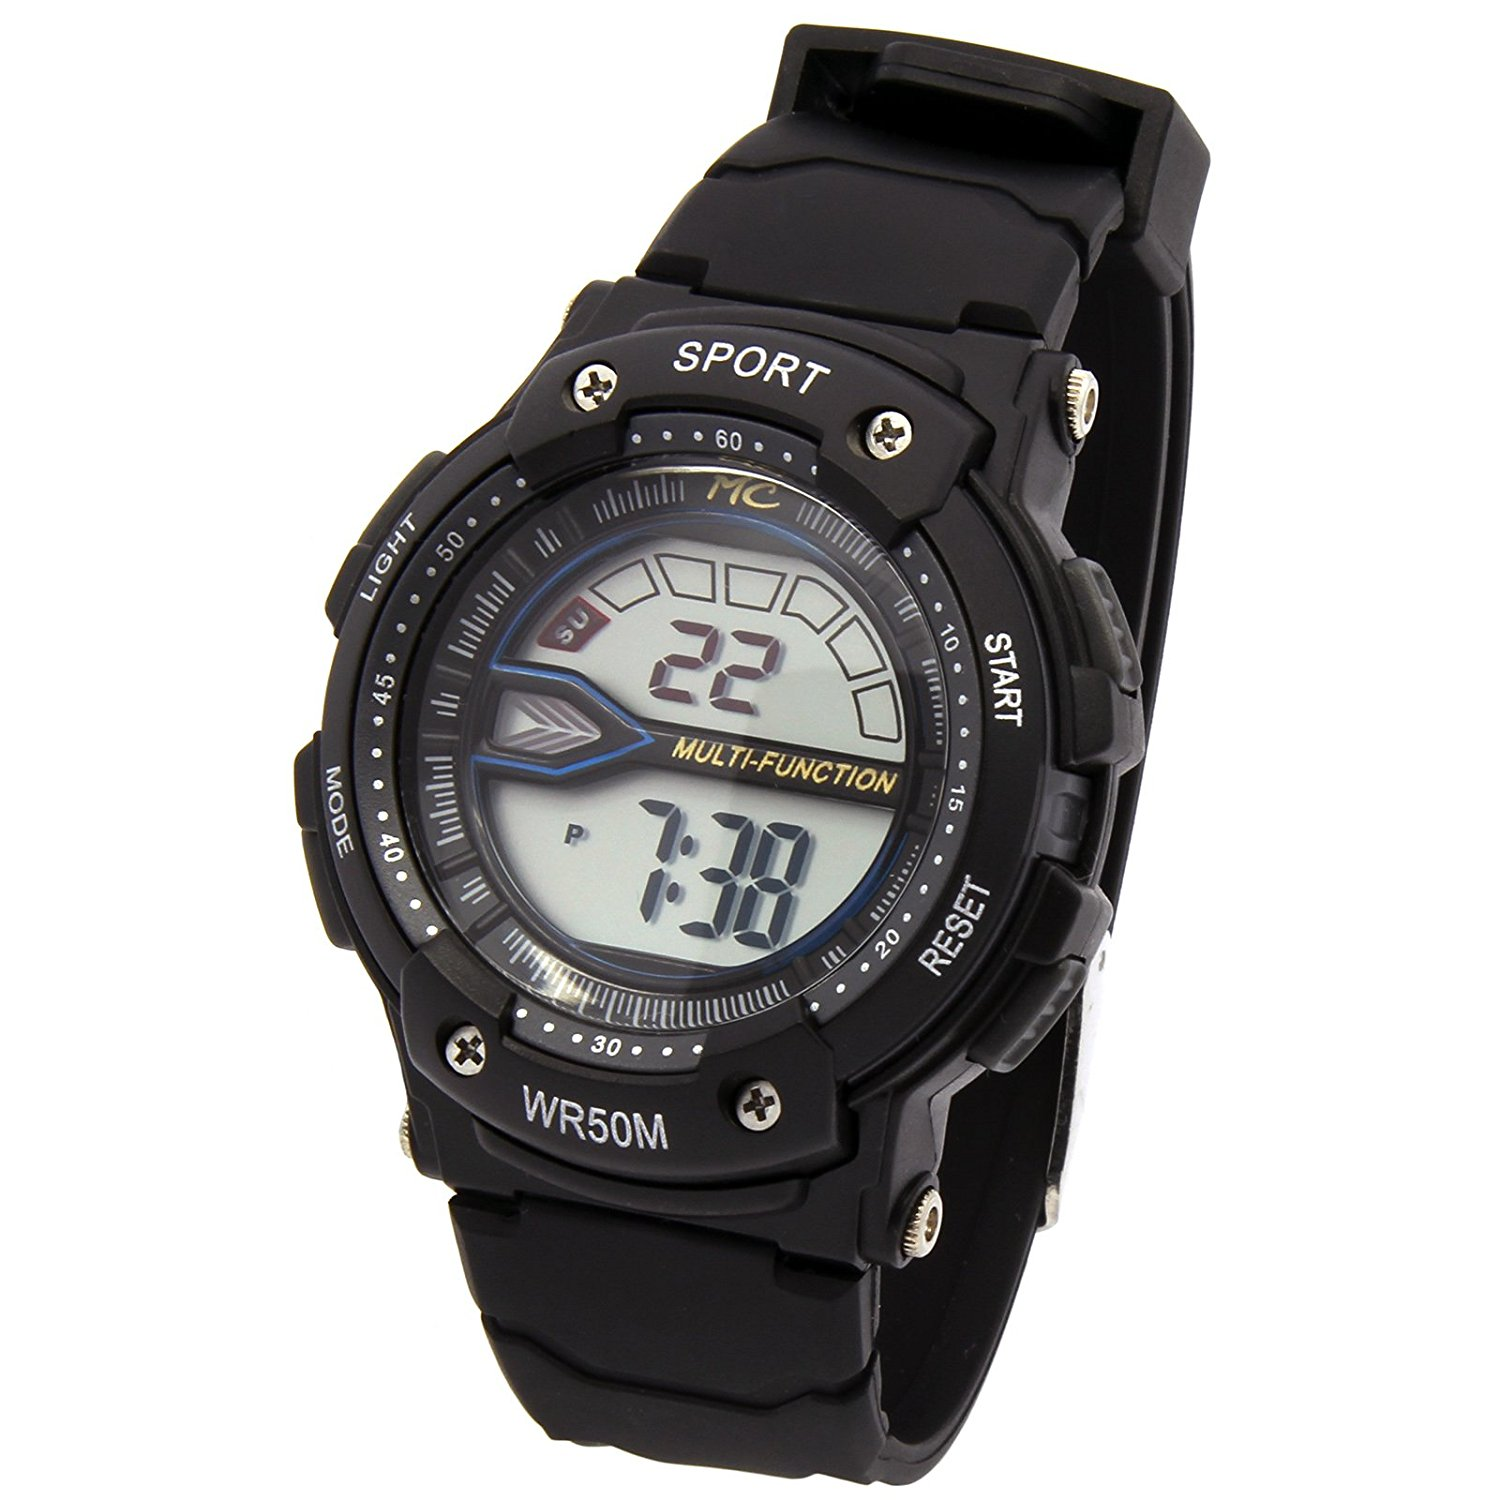 Black Sport Shock Resistant LED Digital Wrist Watch with Alarm Water Proof Watches